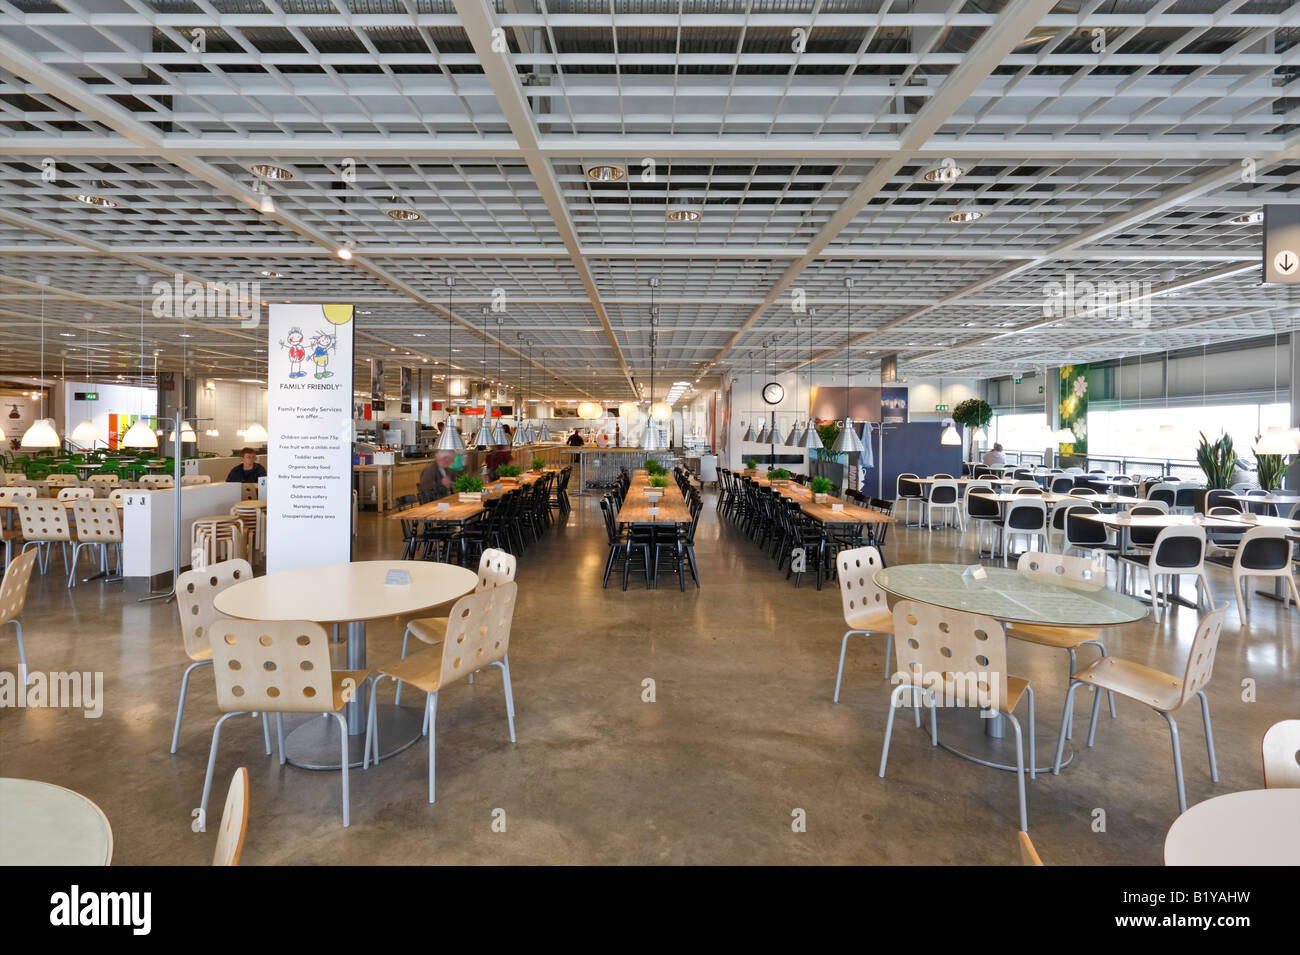 Restaurant at the ikea furniture store in coventry stock